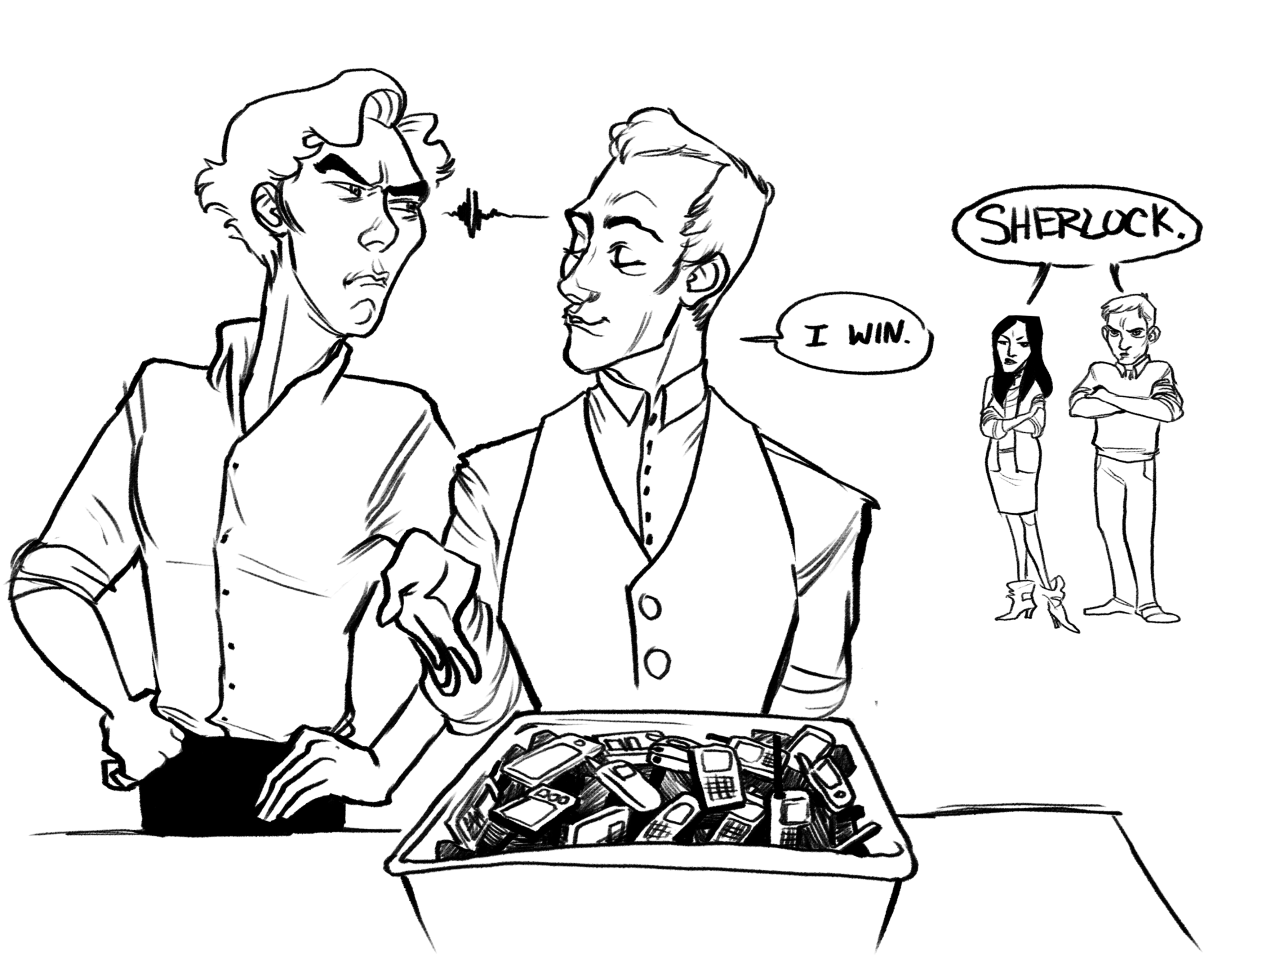 Hey, remember that one time Elementary Sherlock pulled out a giant box of phones and gave one to Joan to call a killer, instead of making her use her own? Yeah, me too.